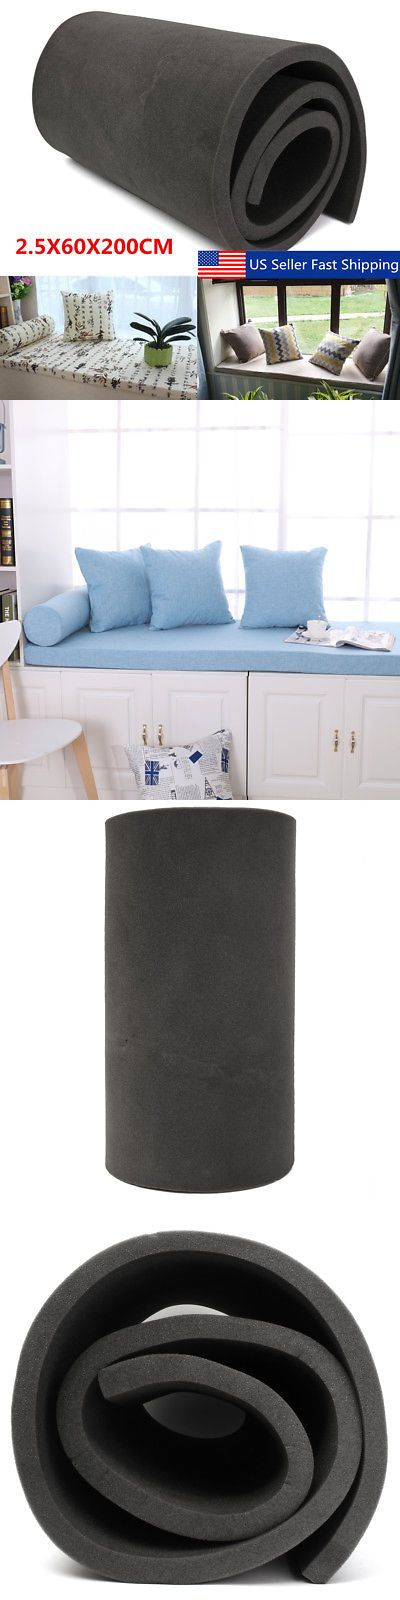 Styrofoam Forms 41200 1 X24 X79 High Density Seat Foam Rubber Replacement Upholstery Cushion Firm Buy It No Upholstery Cushions Seat Foam Seat Cushion Foam